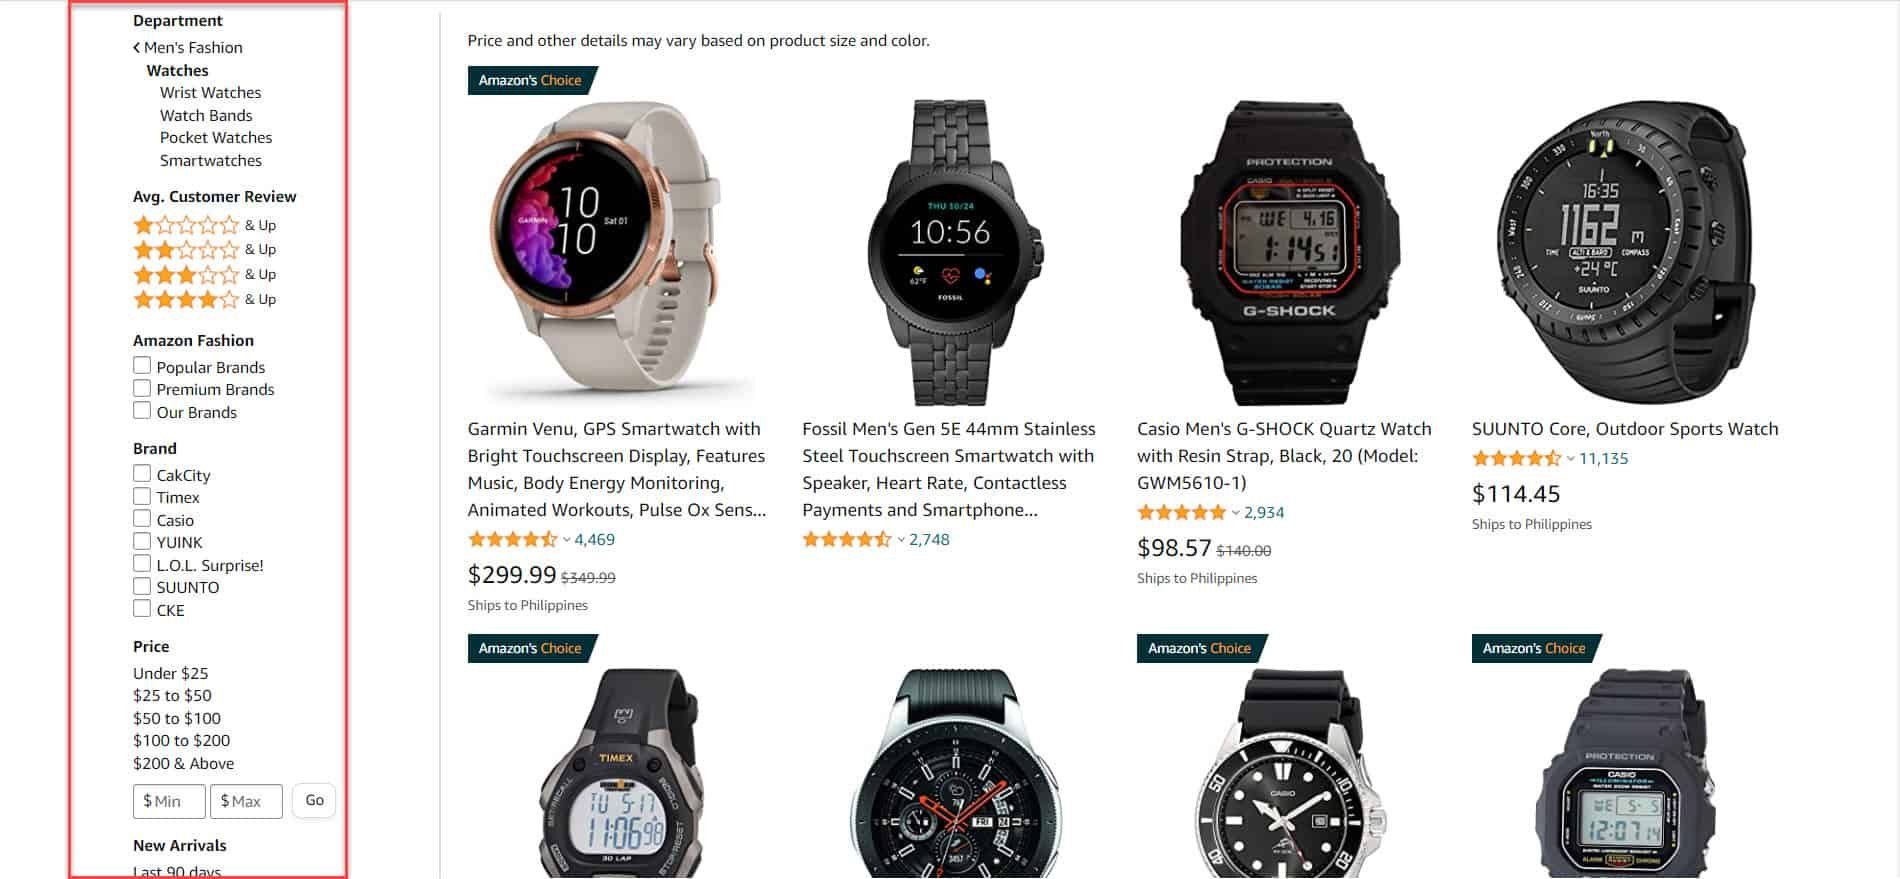 amazon faceted navigation